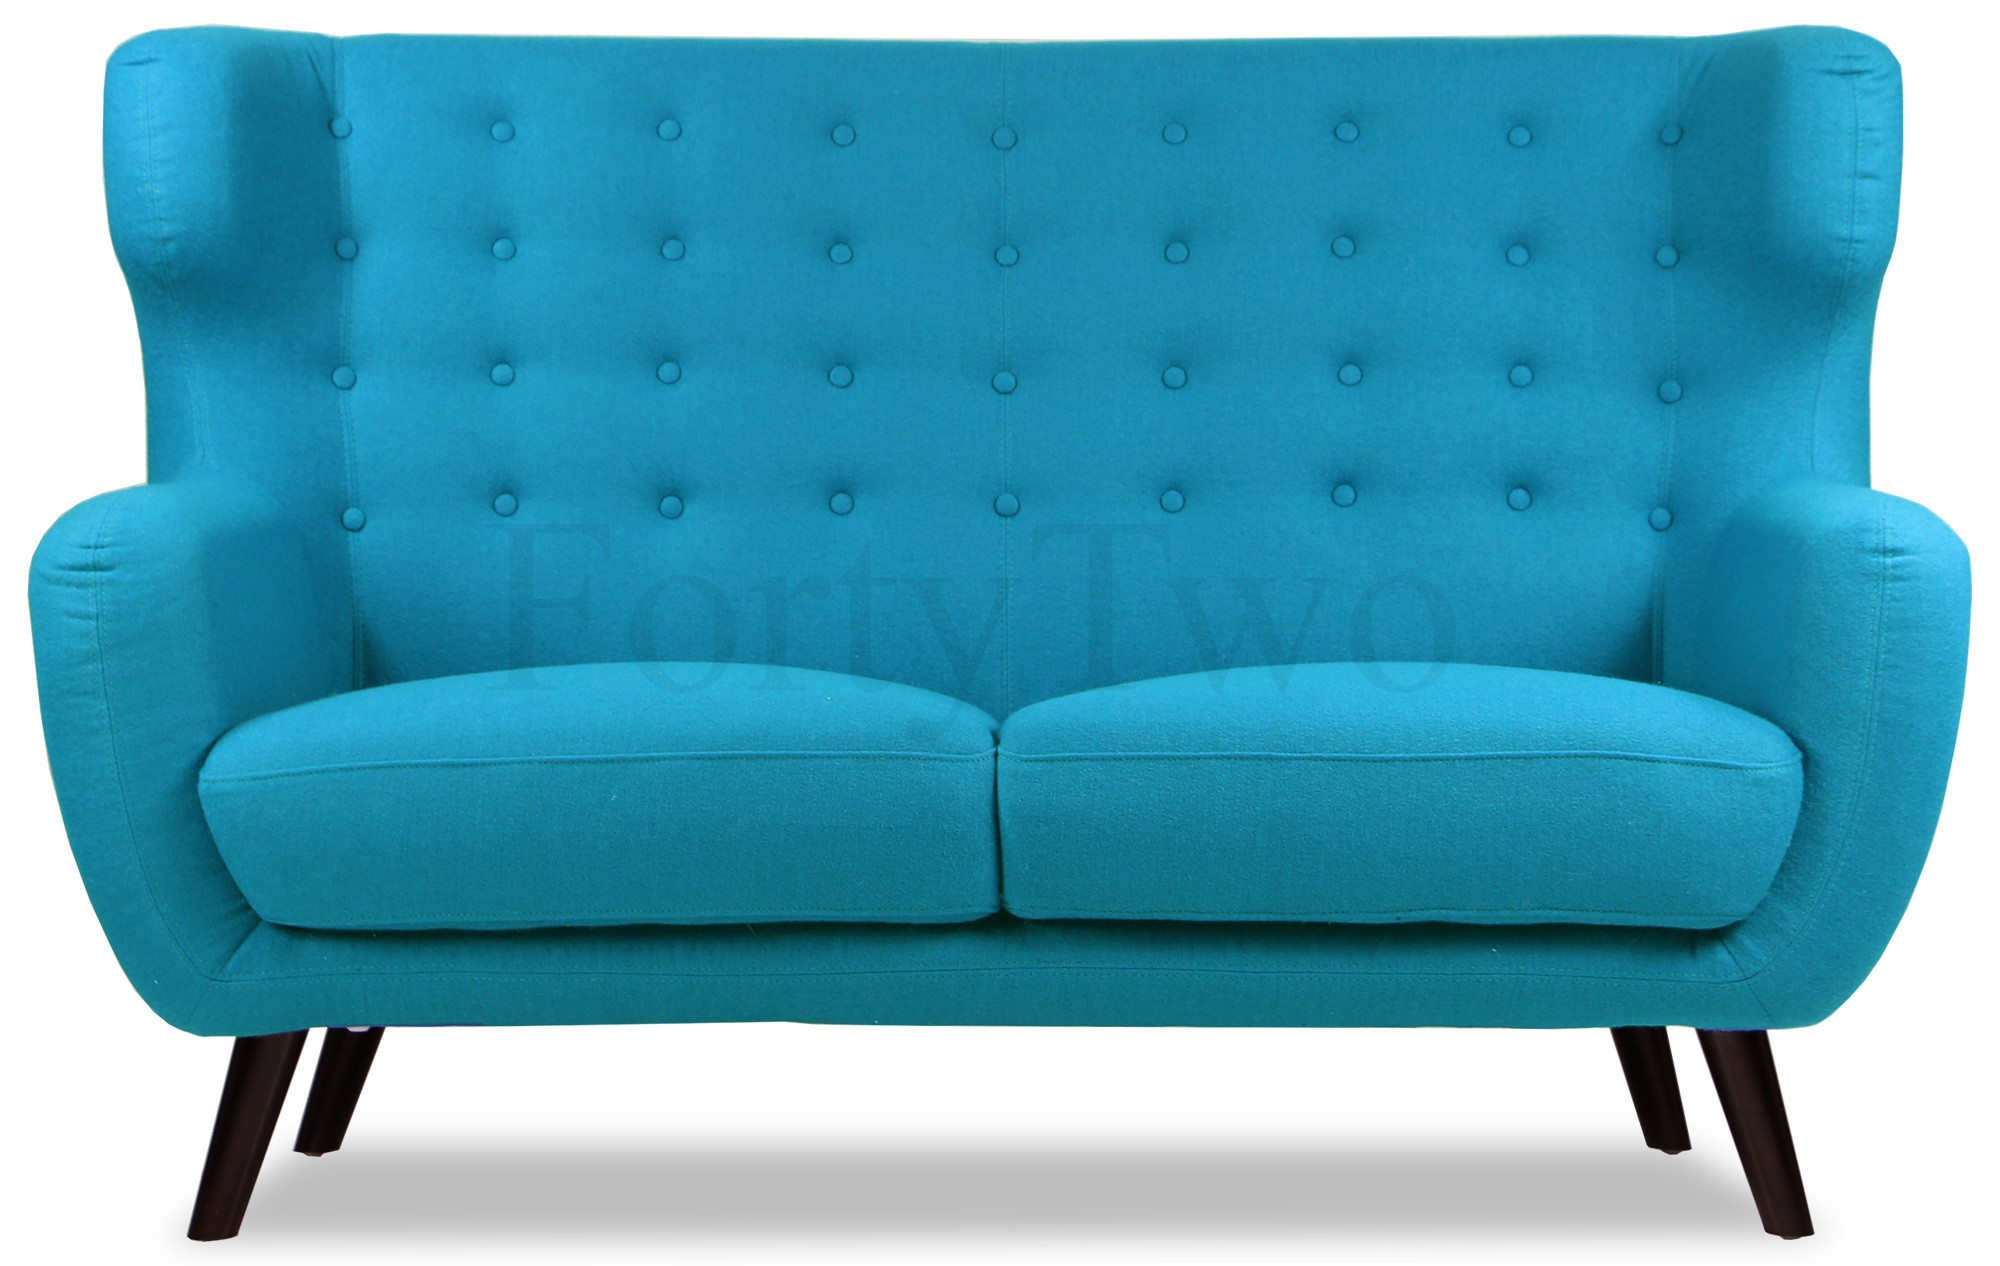 Replica wingback designer 2 seater sofa in aqua designer for Design sofa replica